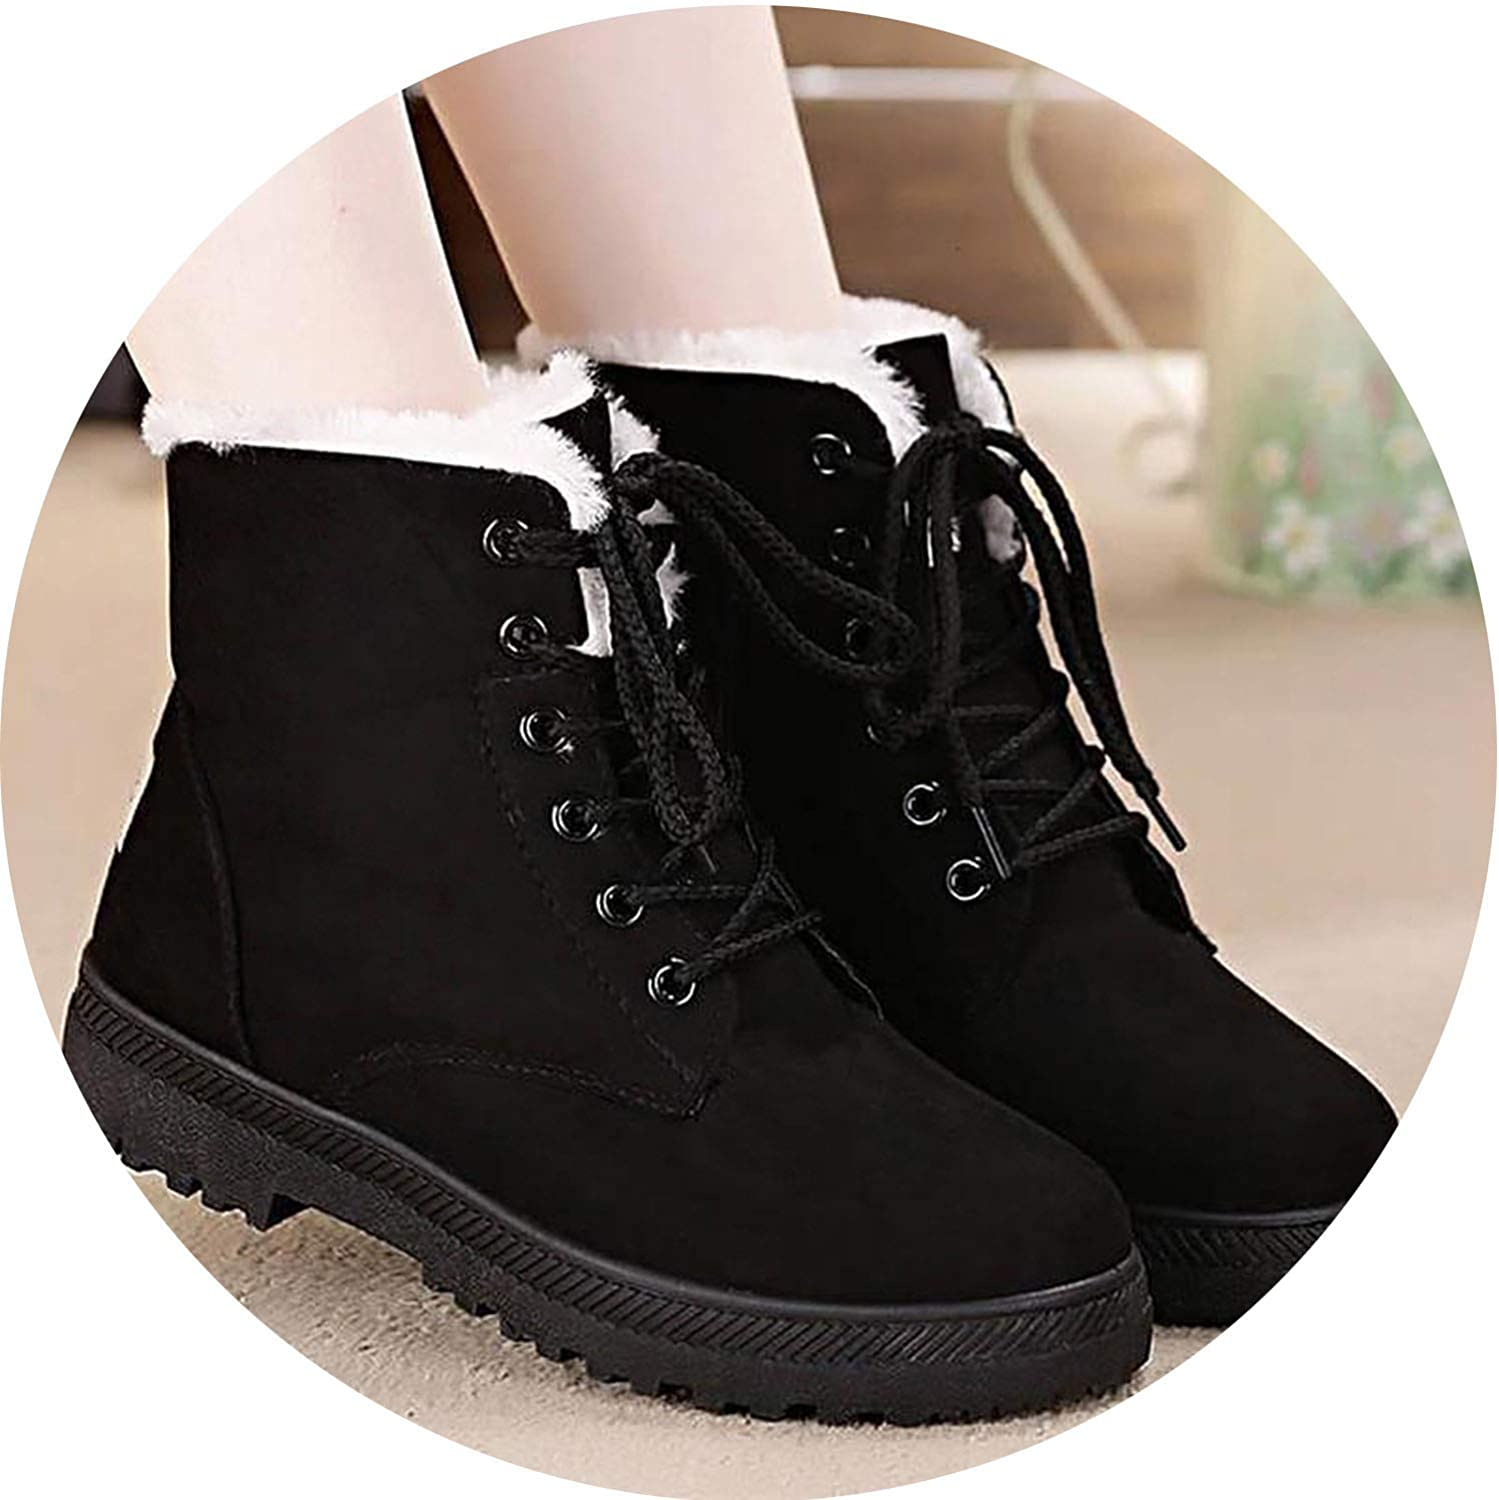 The small cat Snow Boots 2018 Classic Heels Suede Women Winter Boots Warm Fur Plush Insole Ankle Boots Women shoes